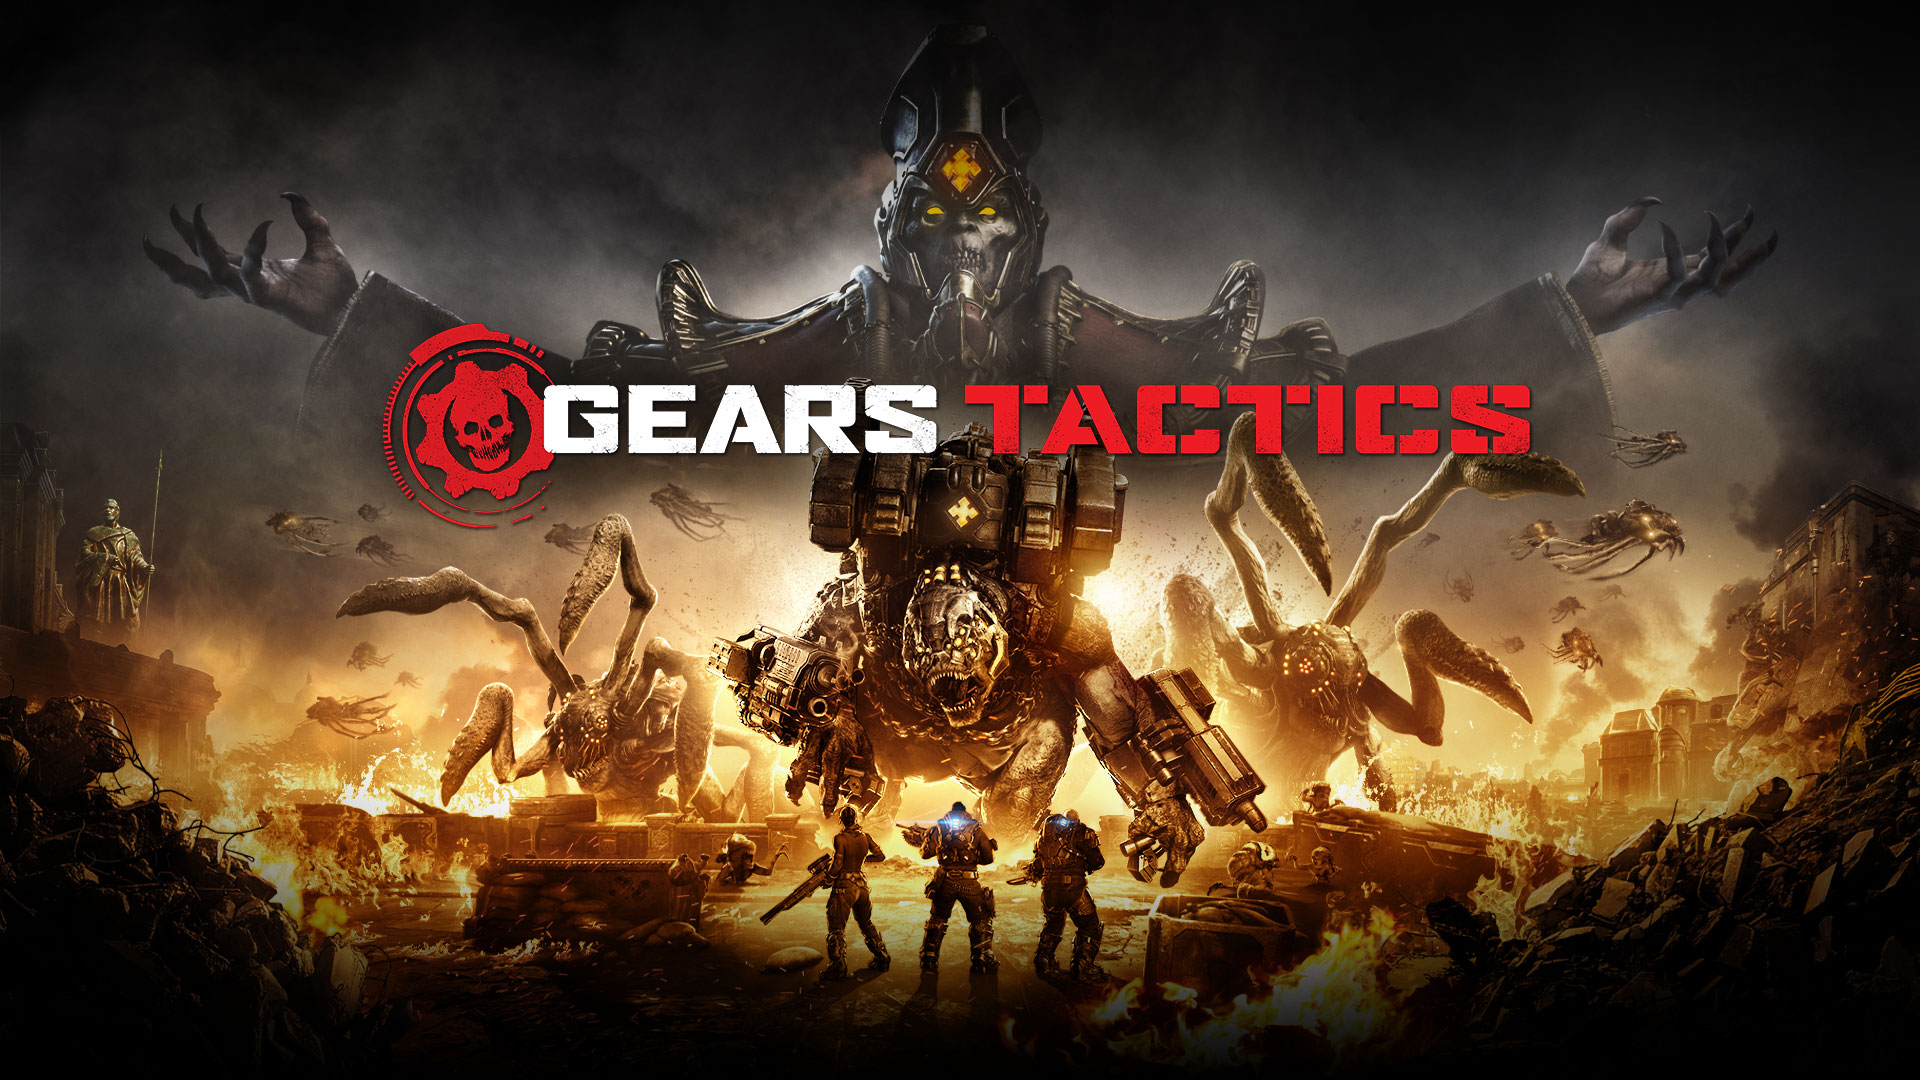 Gears Tactics logo, three characters in heavy armour face large monsters in a burning war zone